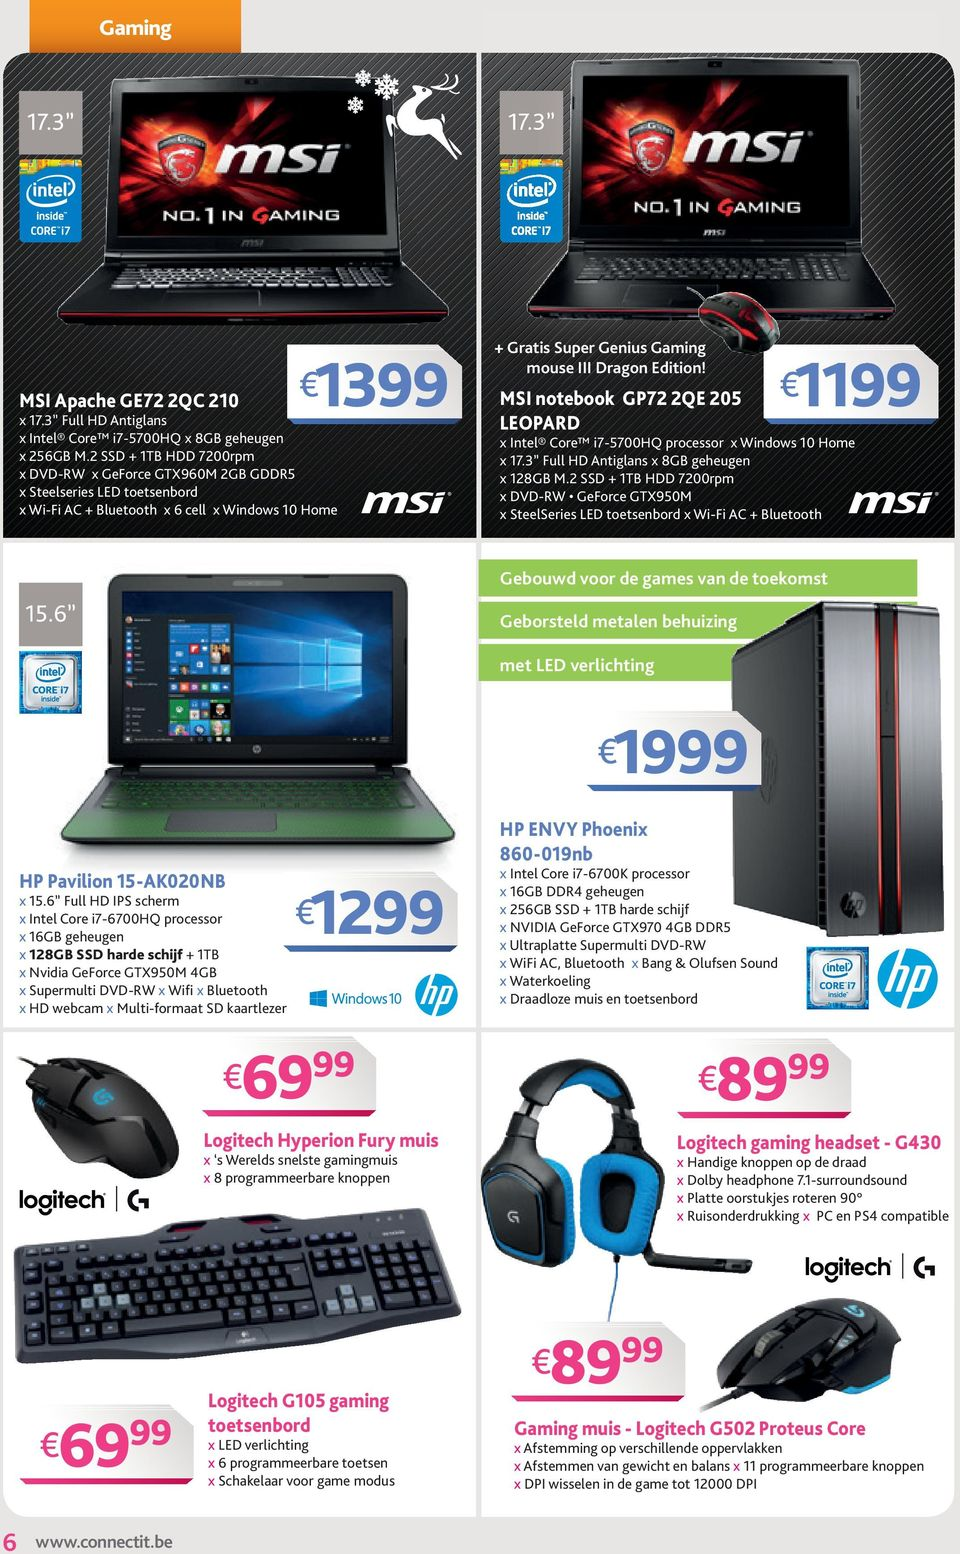 MSI notebook GP72 2QE 205 LEOPARD 11 x Intel Core i7-5700hq processor x Windows 10 Home x 17.3 Full HD Antiglans x 8GB geheugen x 128GB M.